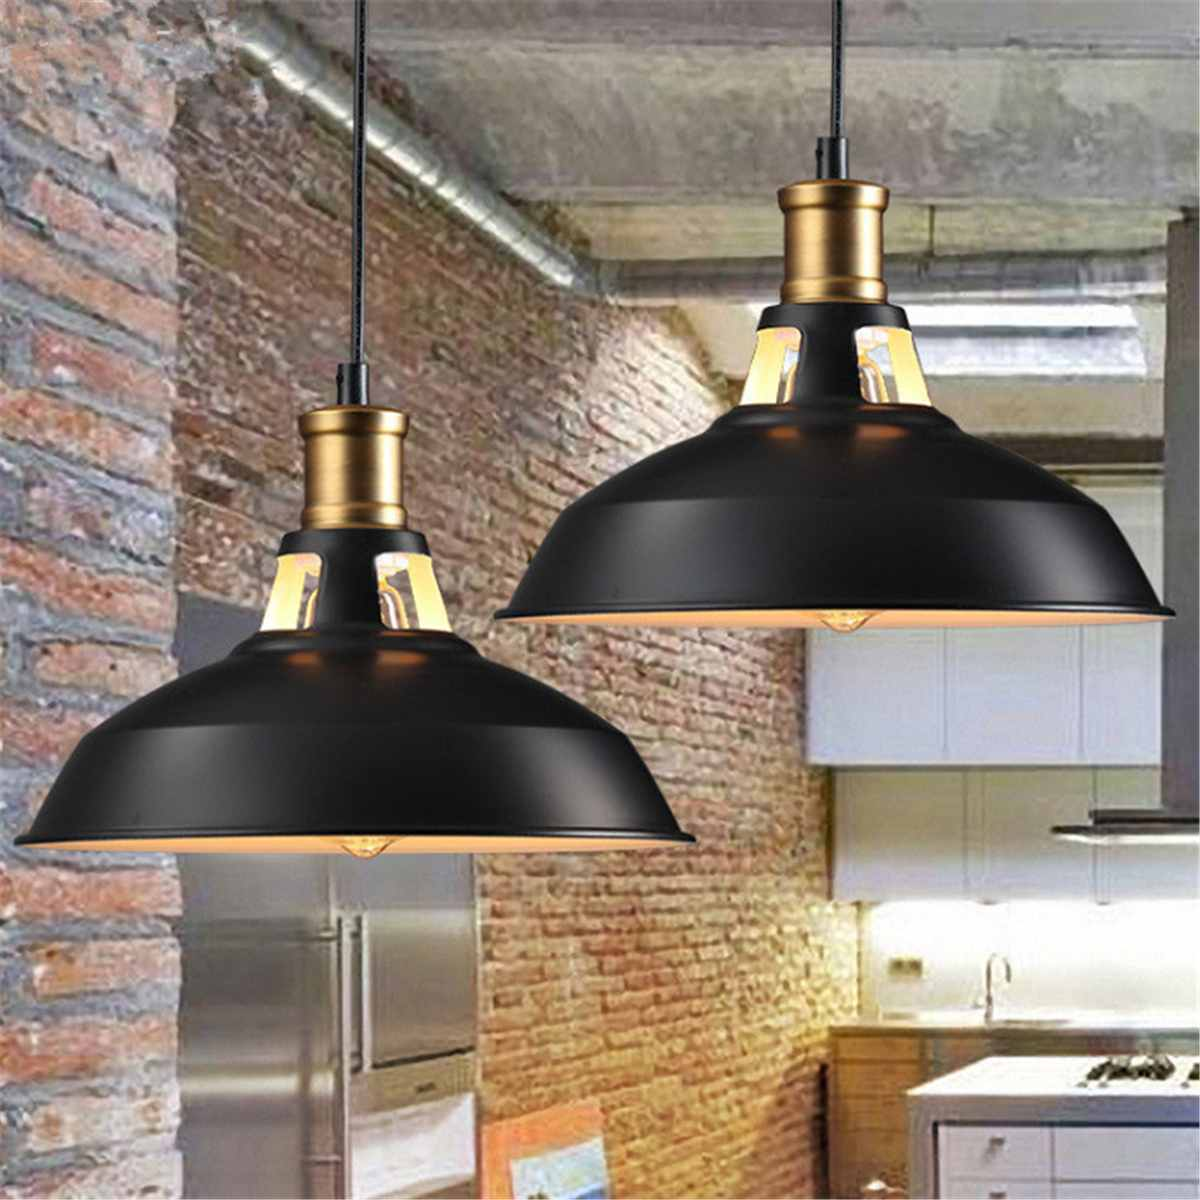 Industrial Vintage Pendant Light Decorative Steel Lamp Base Classical Light Fitting Lamp Ceiling Black Iron Pendant Light 27cm